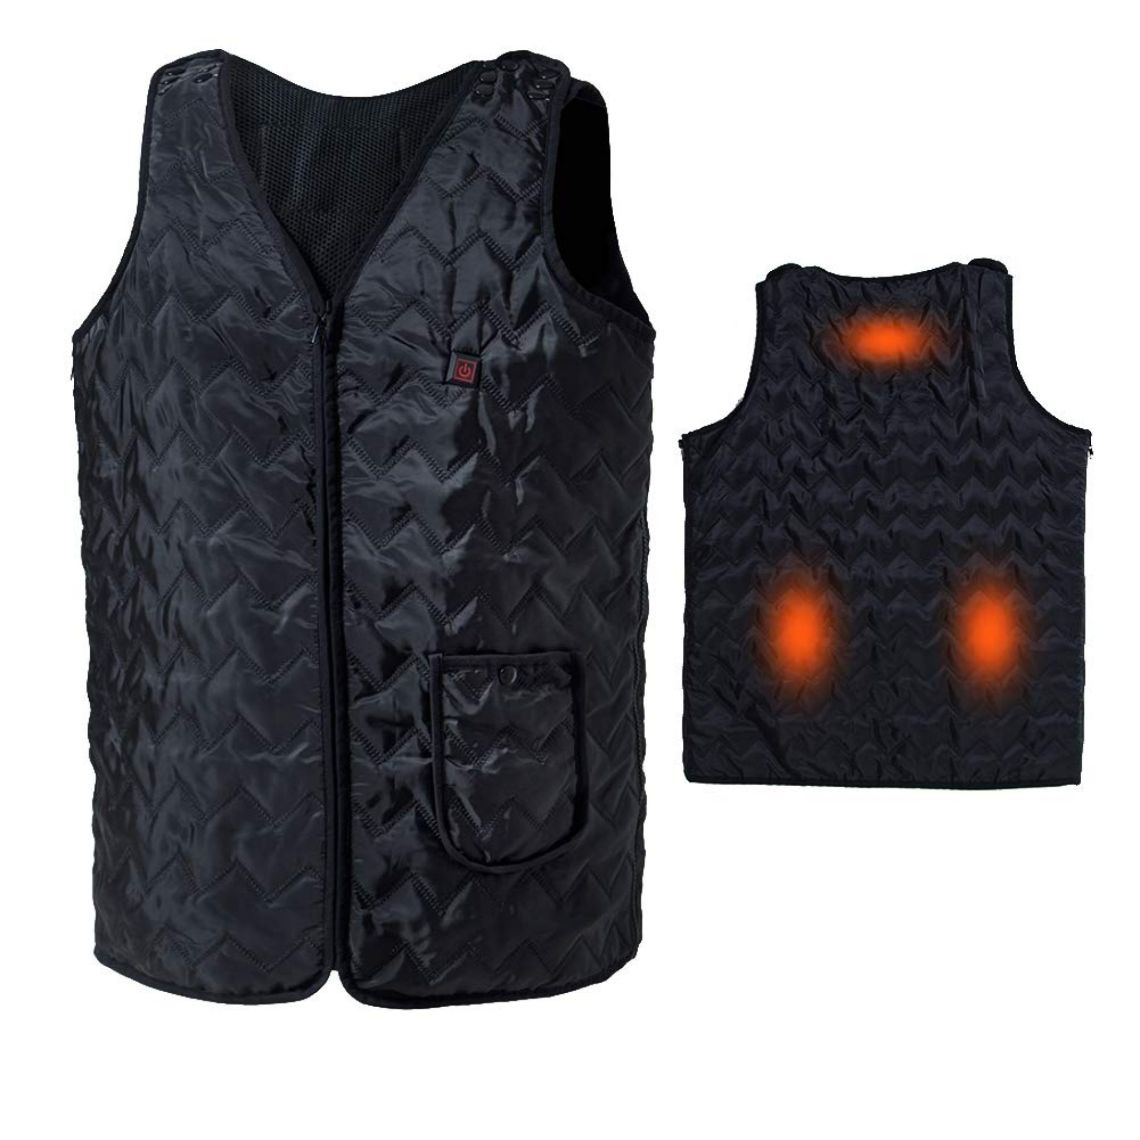 Amazon.com: Vinmori Electric Heated Vest, Washable Size Adjustable USB Charging Heated Clothing (Black): Health & Personal Care